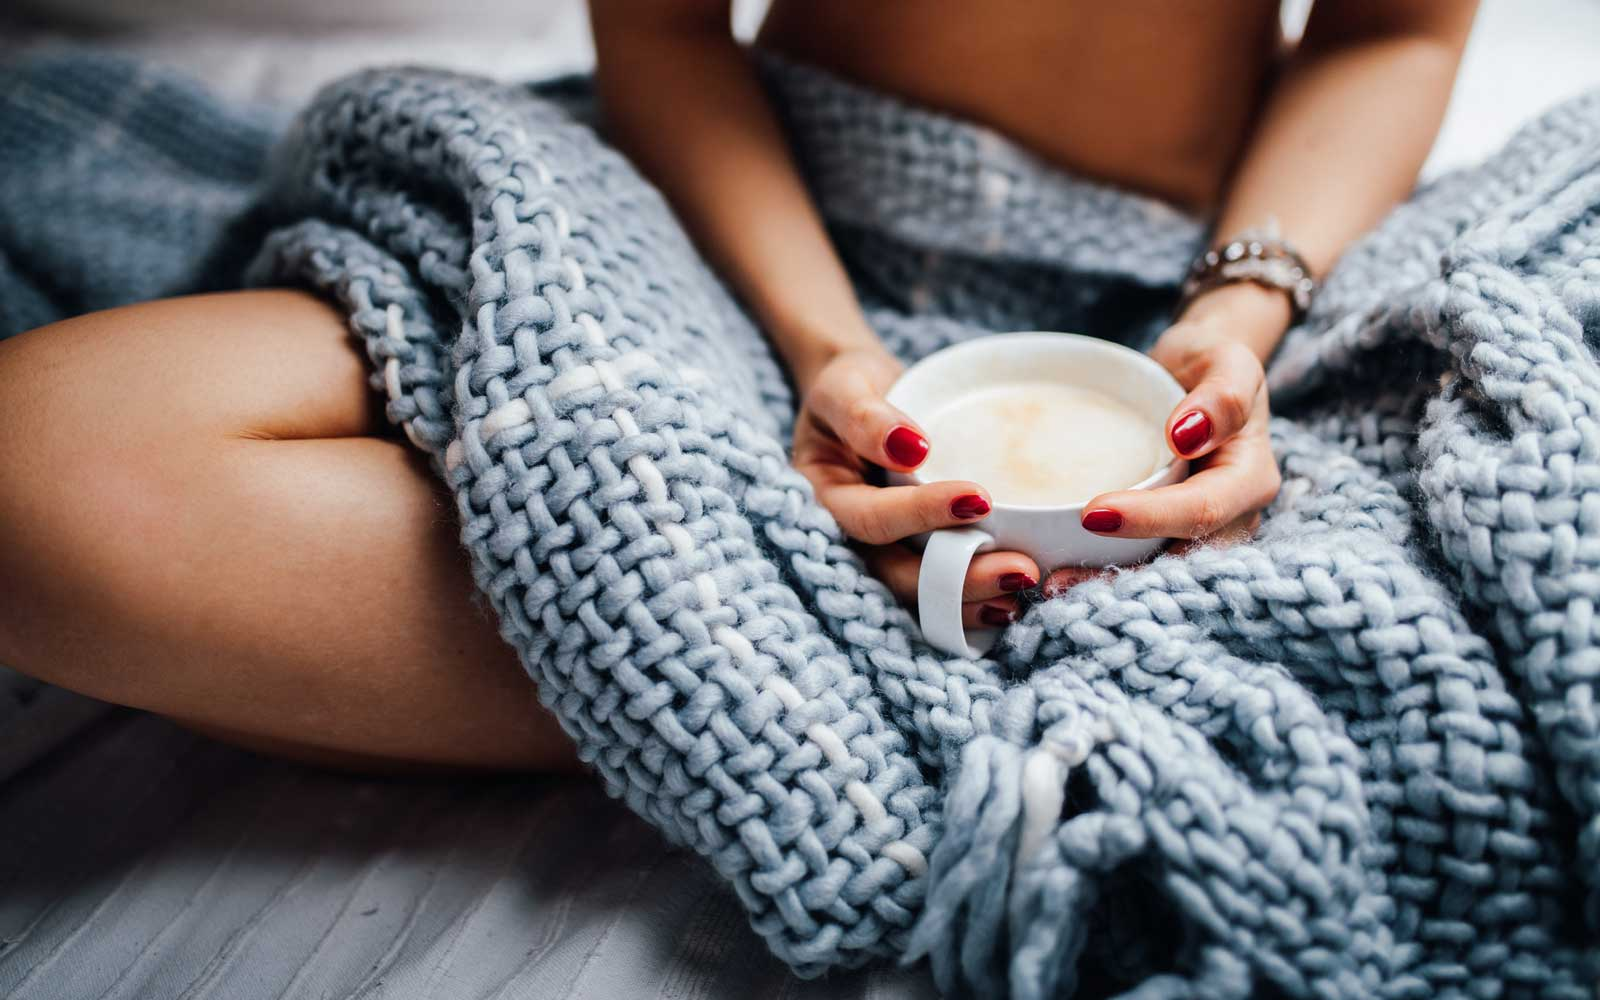 Forget Hygge—There's a New Finnish Word That Perfectly Describes Your Weekend Plans